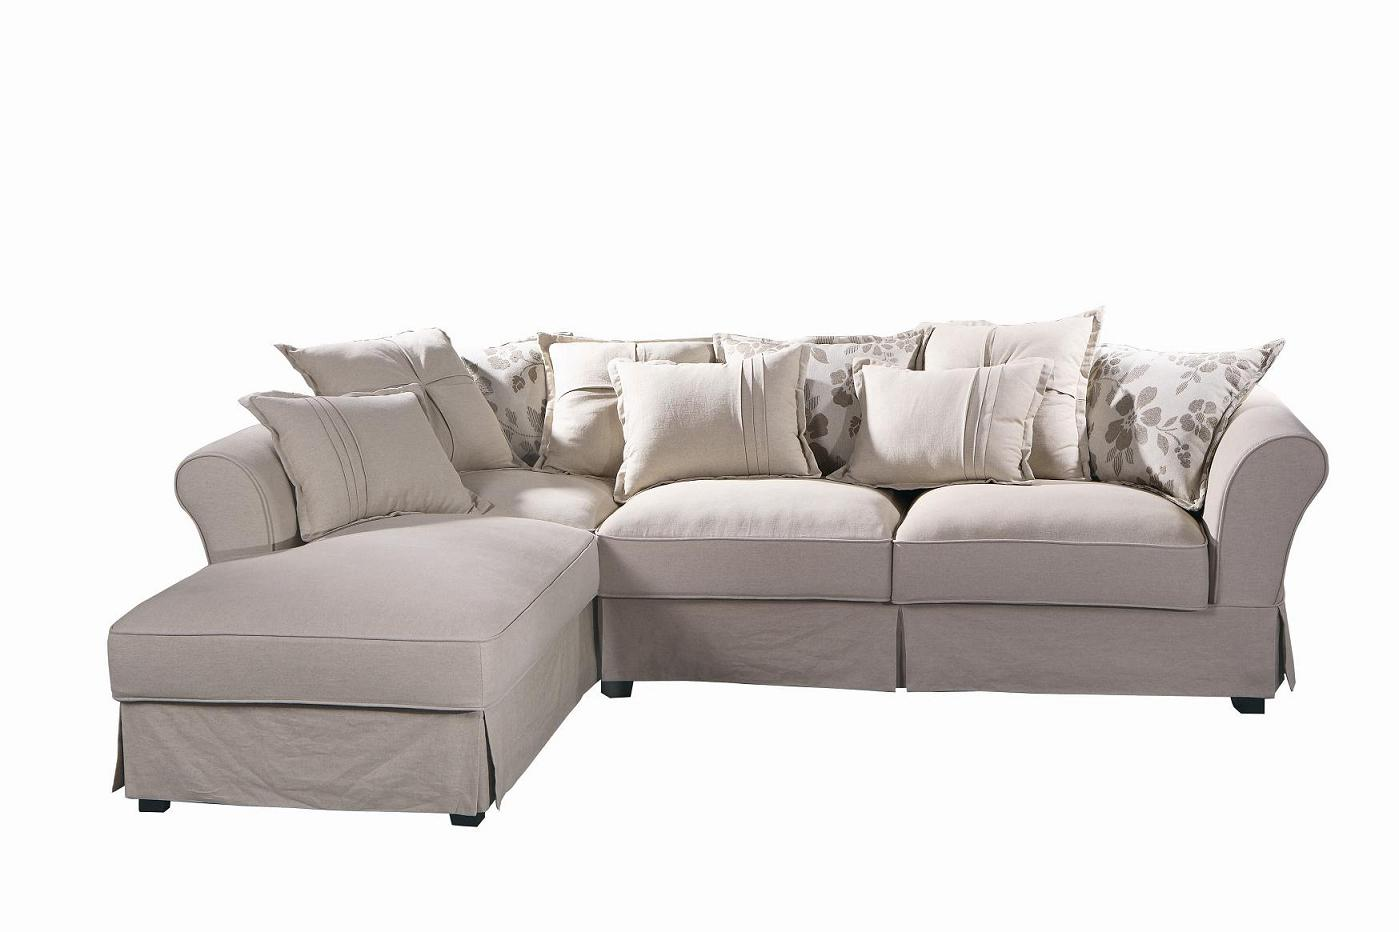 cheap sectional sofas in white plus cushions for sofa ideas